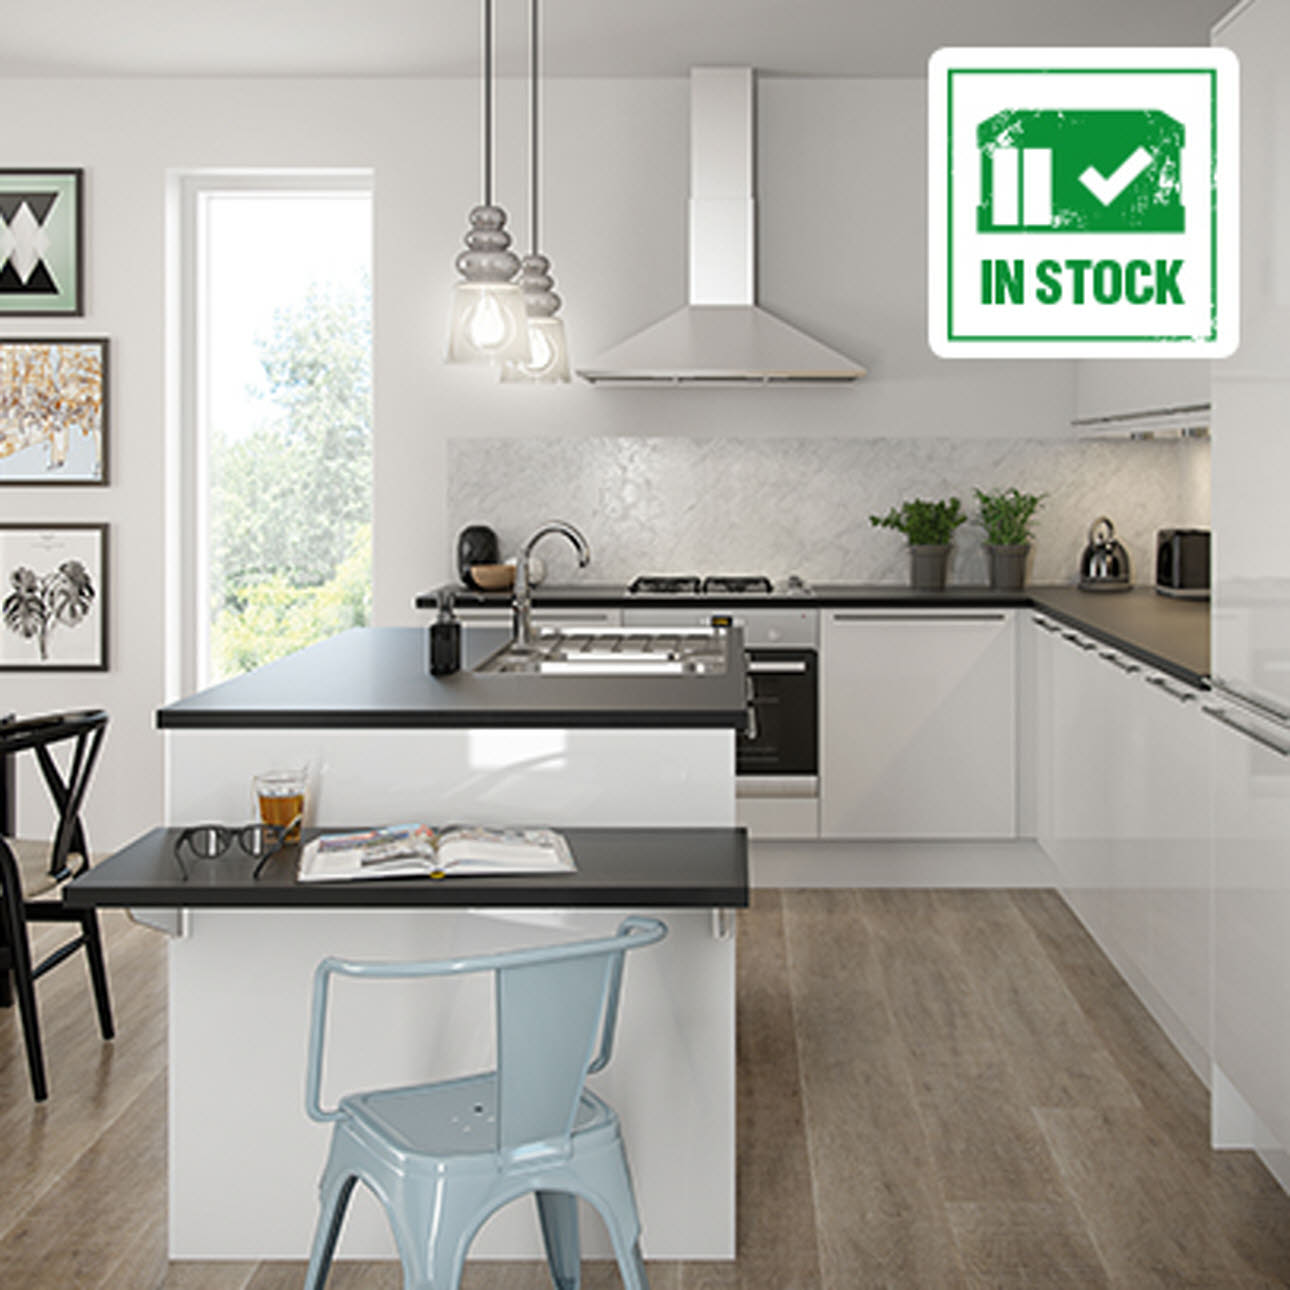 Novella White kitchen, black granite worktops, In Stock